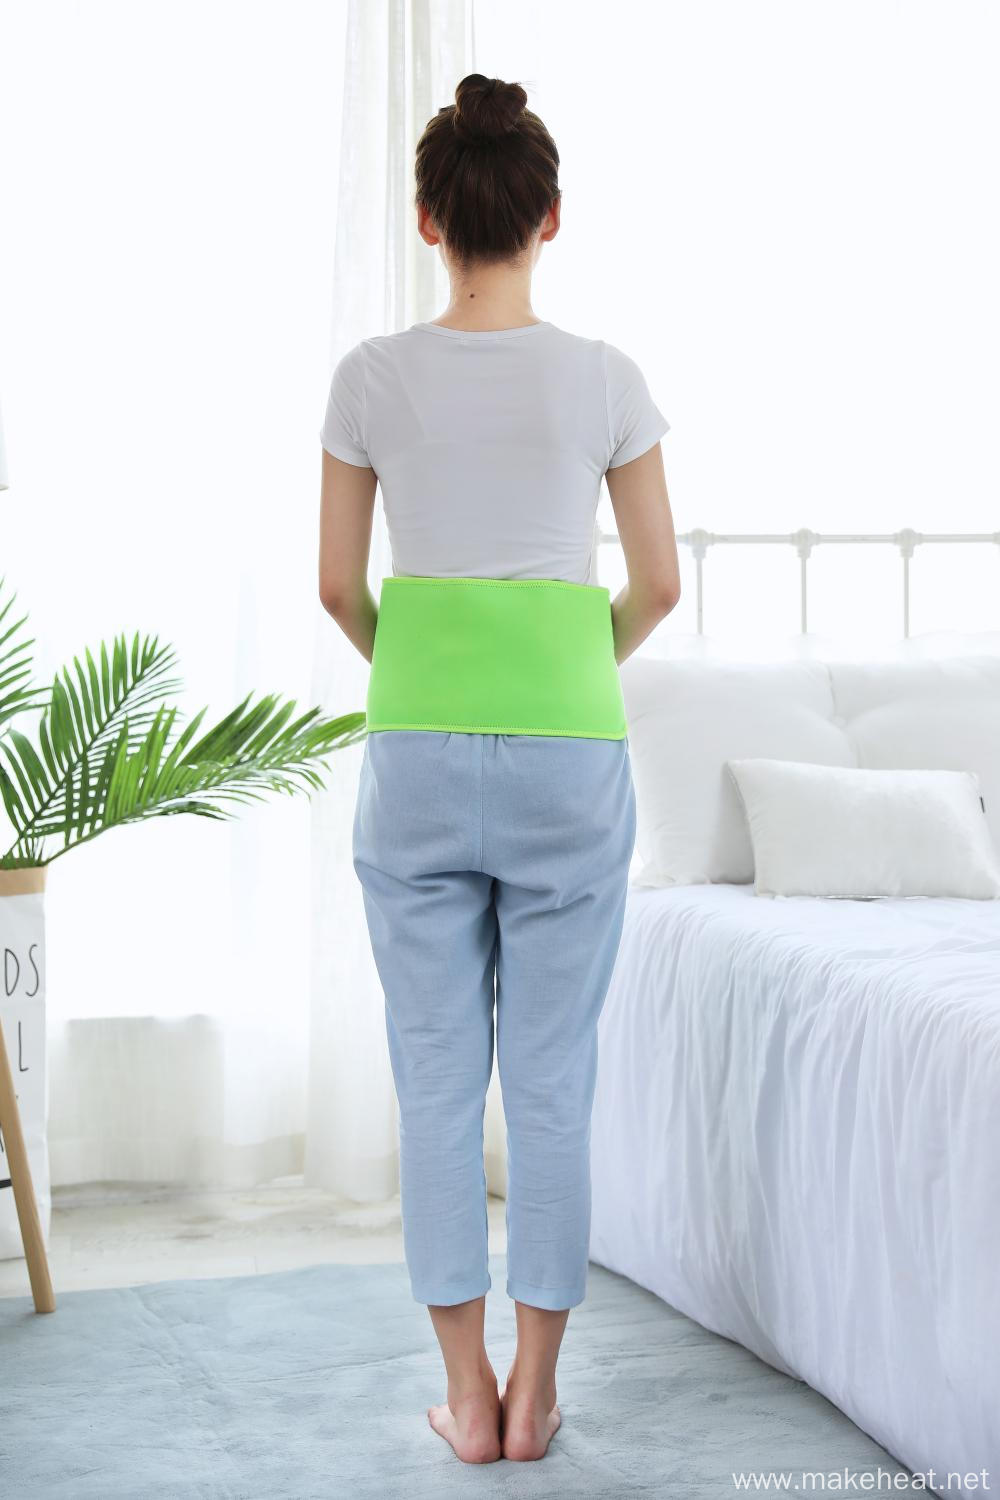 Small Moist/Dry Heating Pad